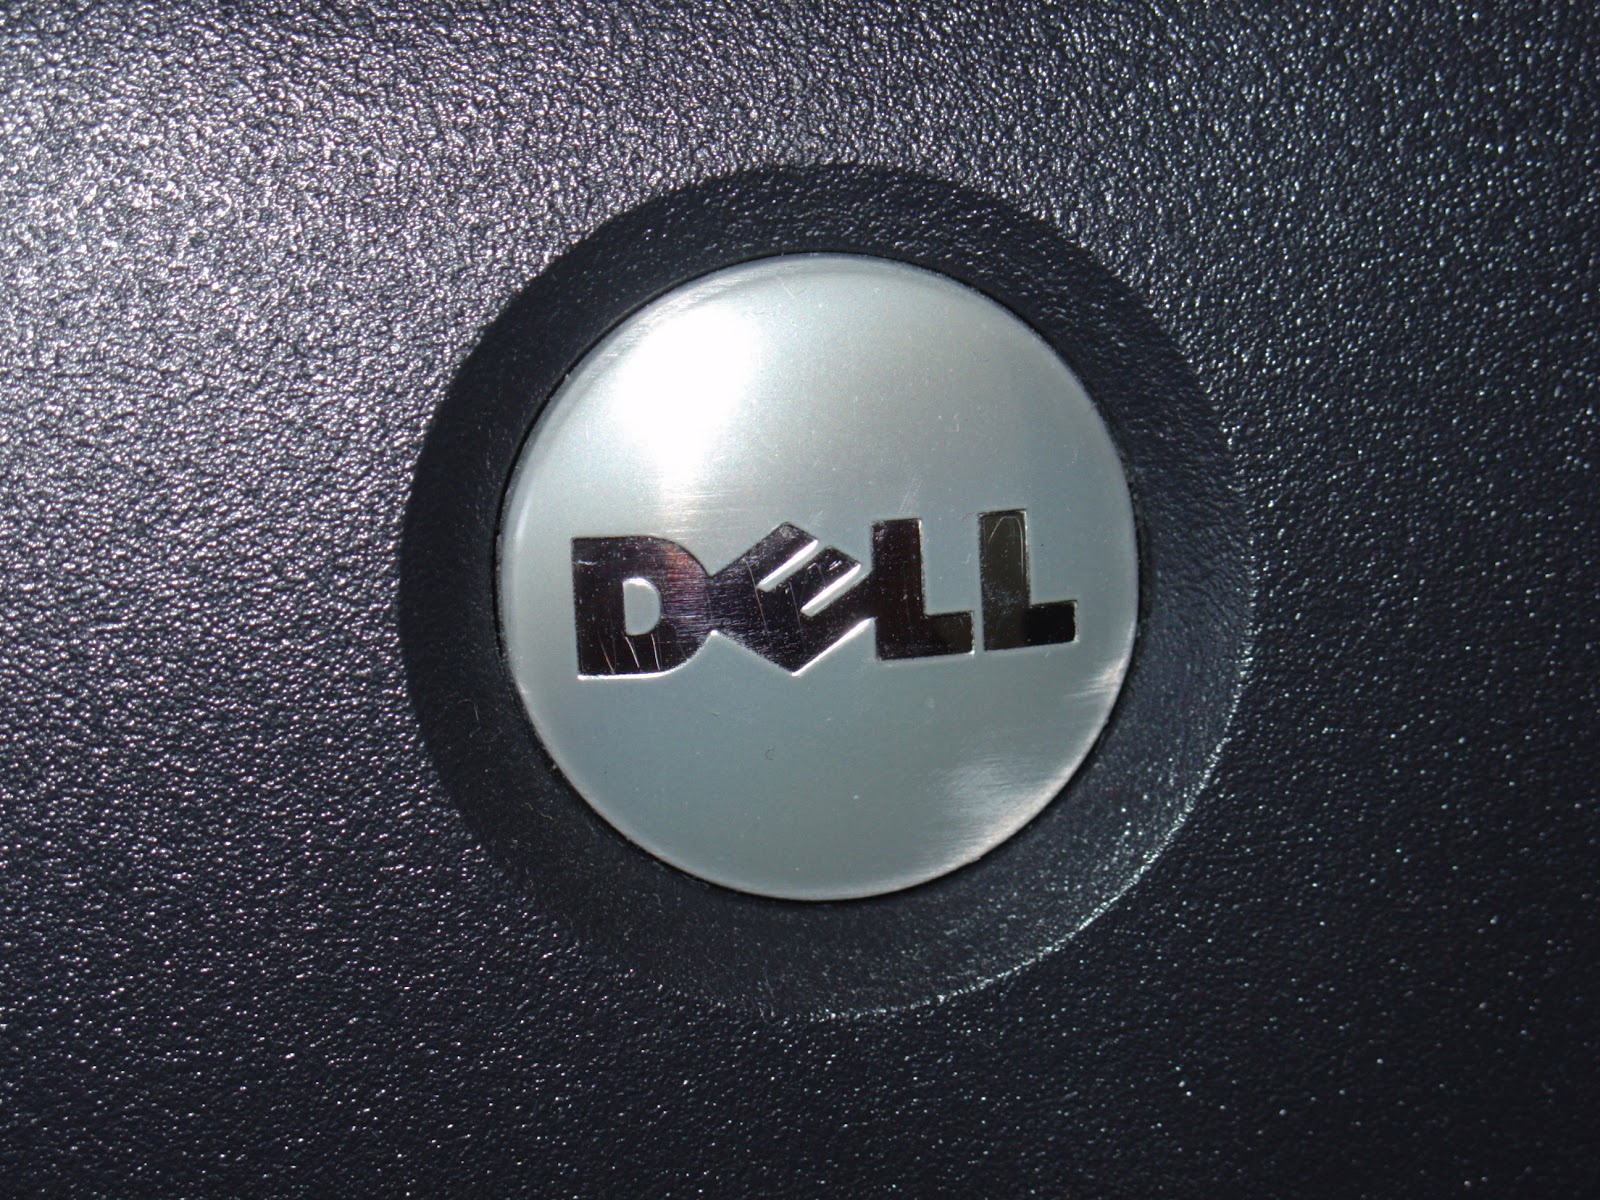 dell computers wallpaper logo - photo #8